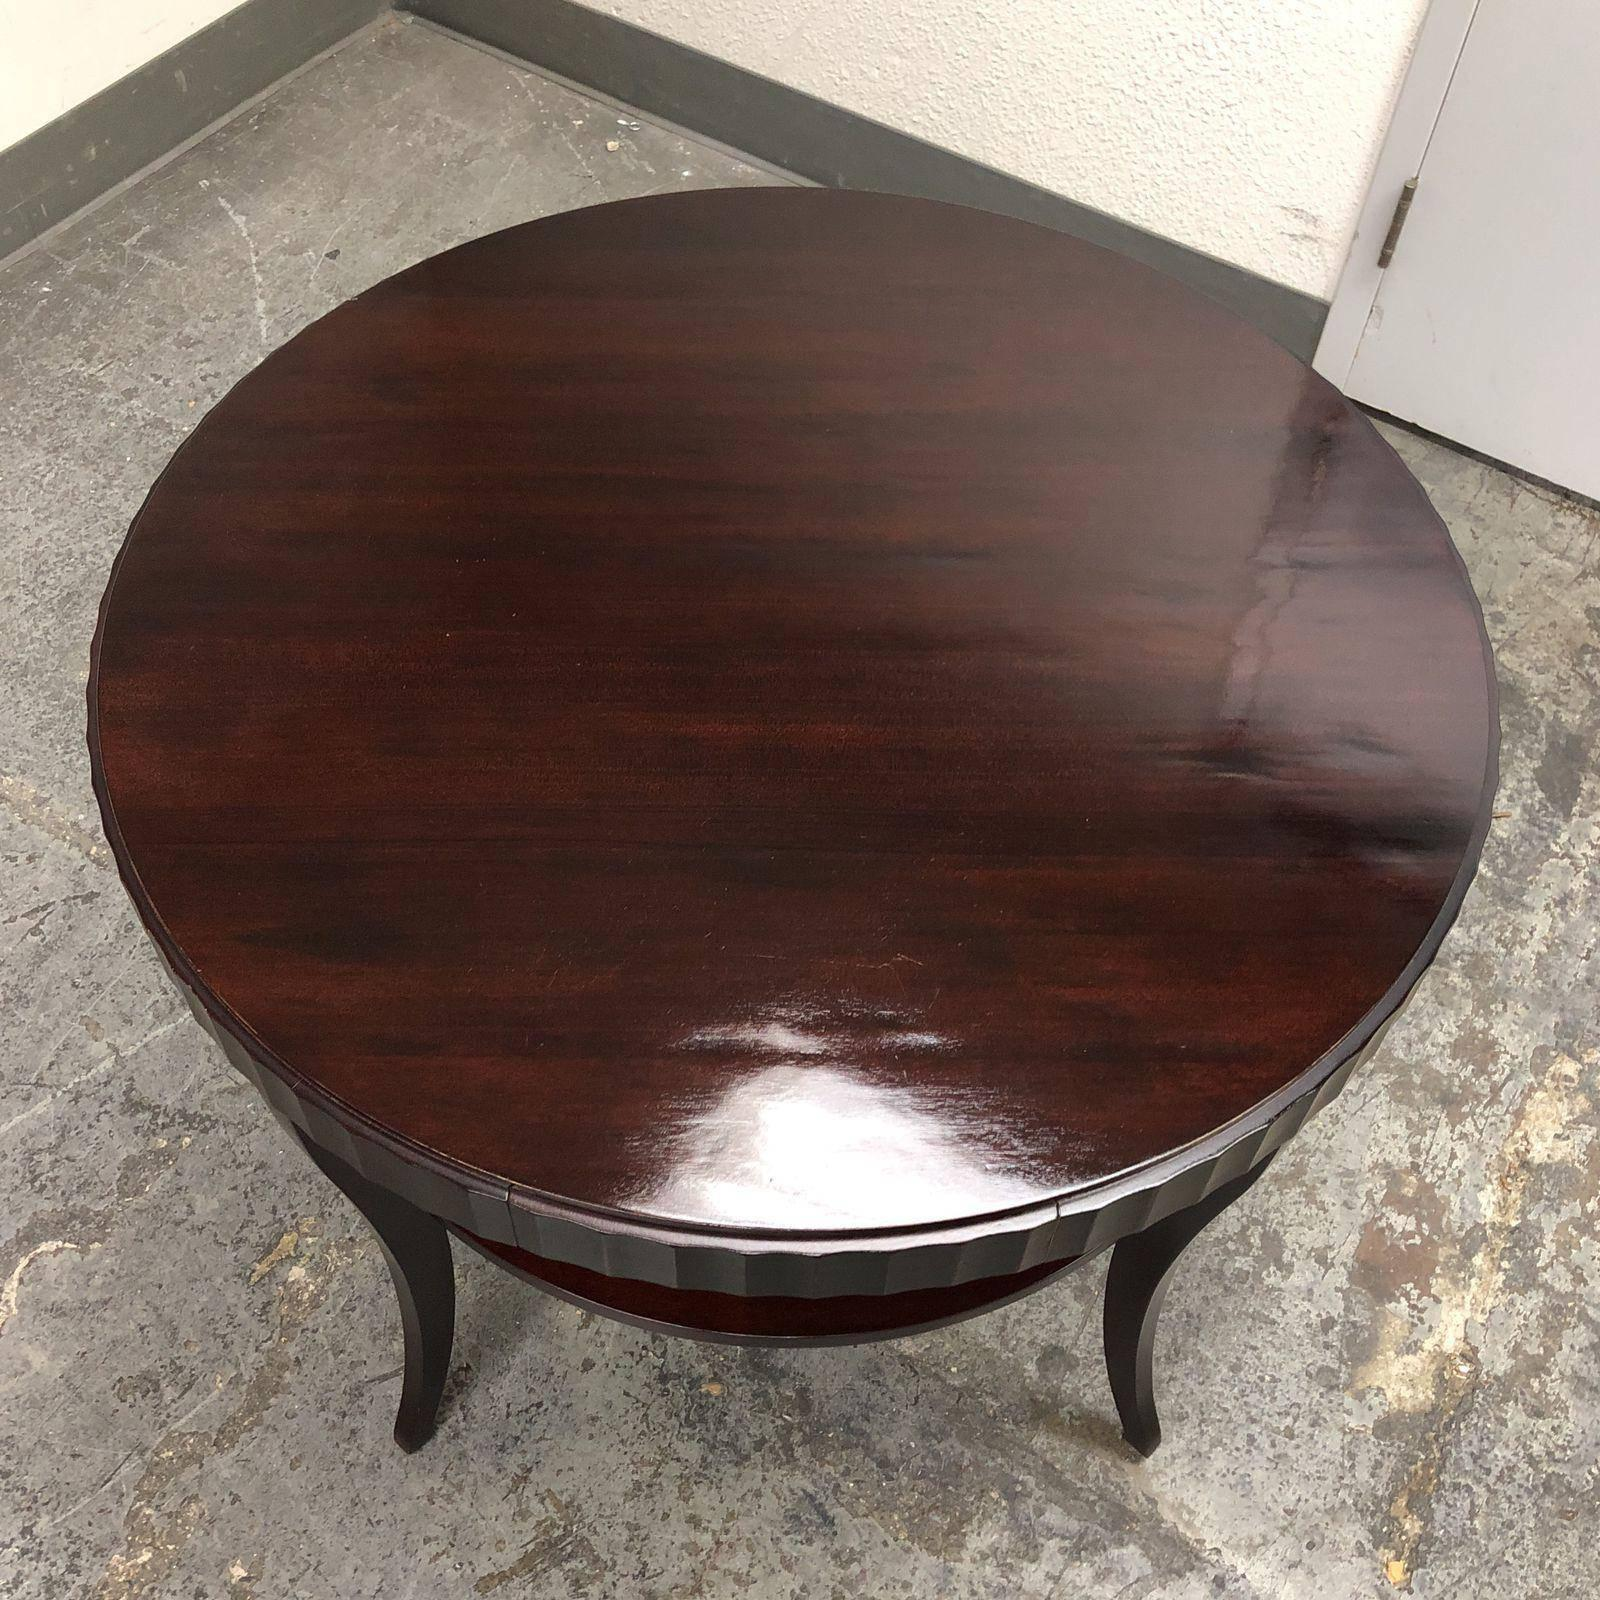 Baker Furniture Barbara Barry Side Or Entry Table For Sale At 1stdibs